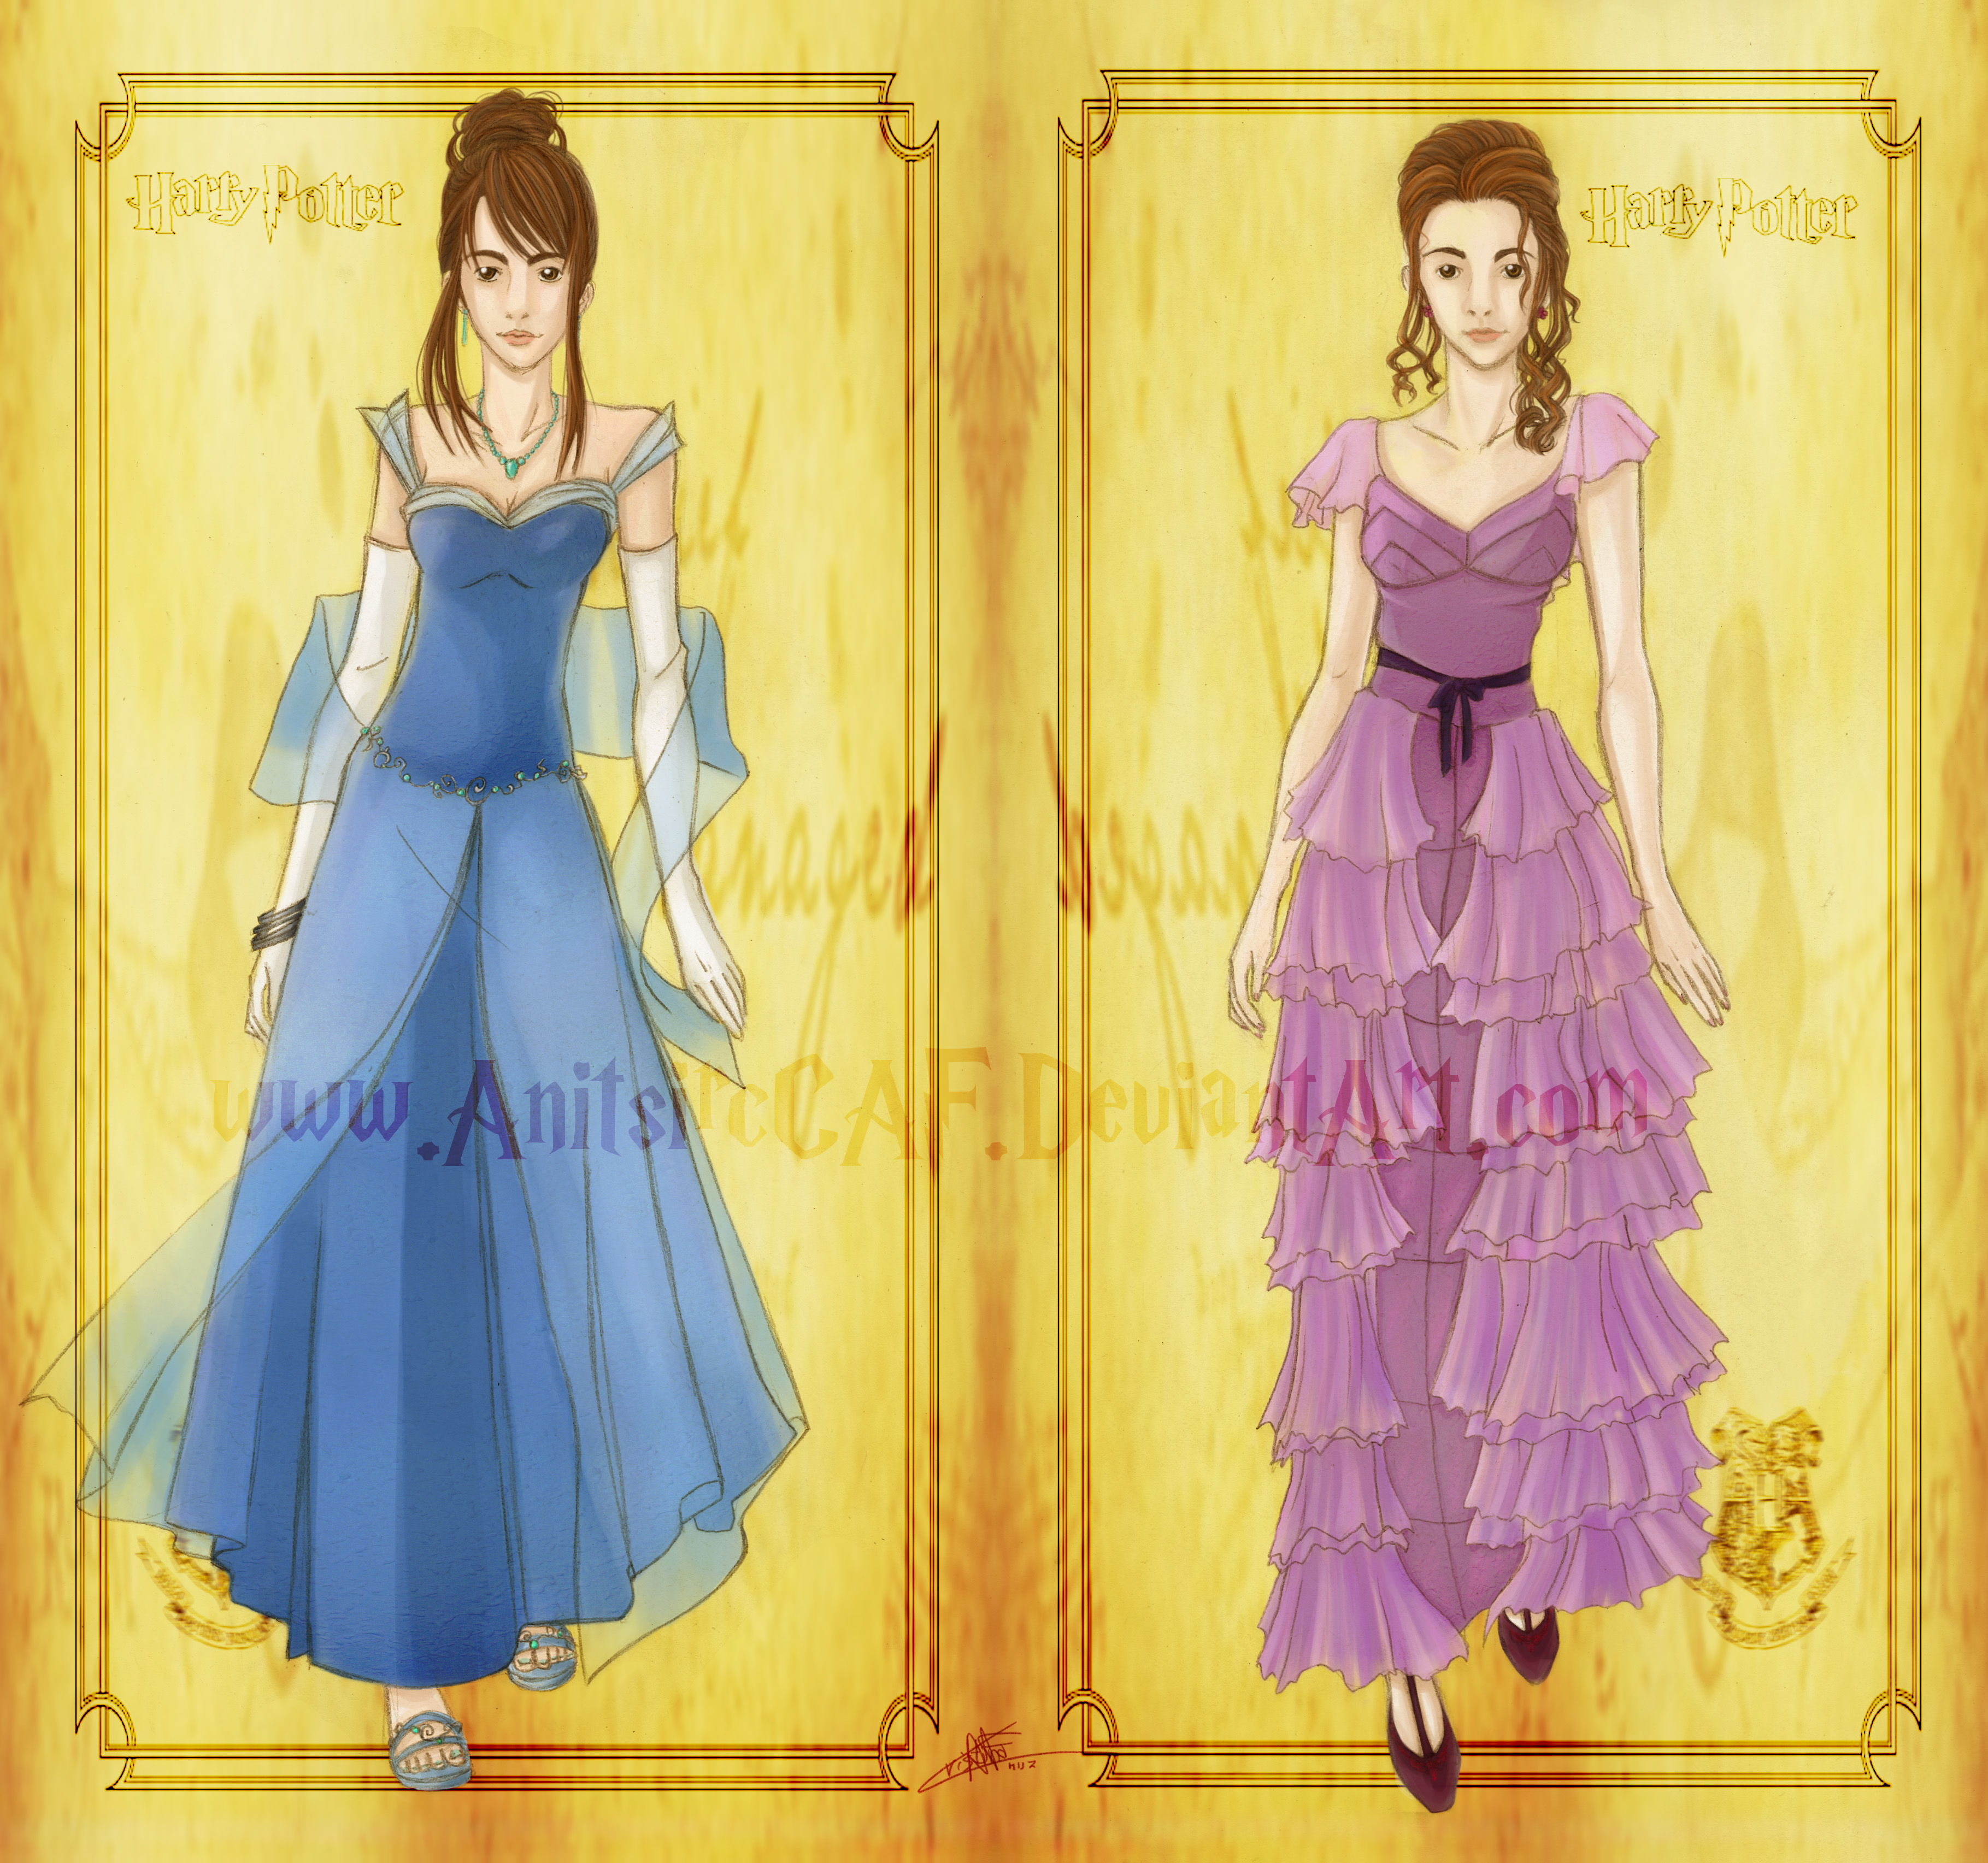 Periwinkle Ball Gown Dresses | Dress images